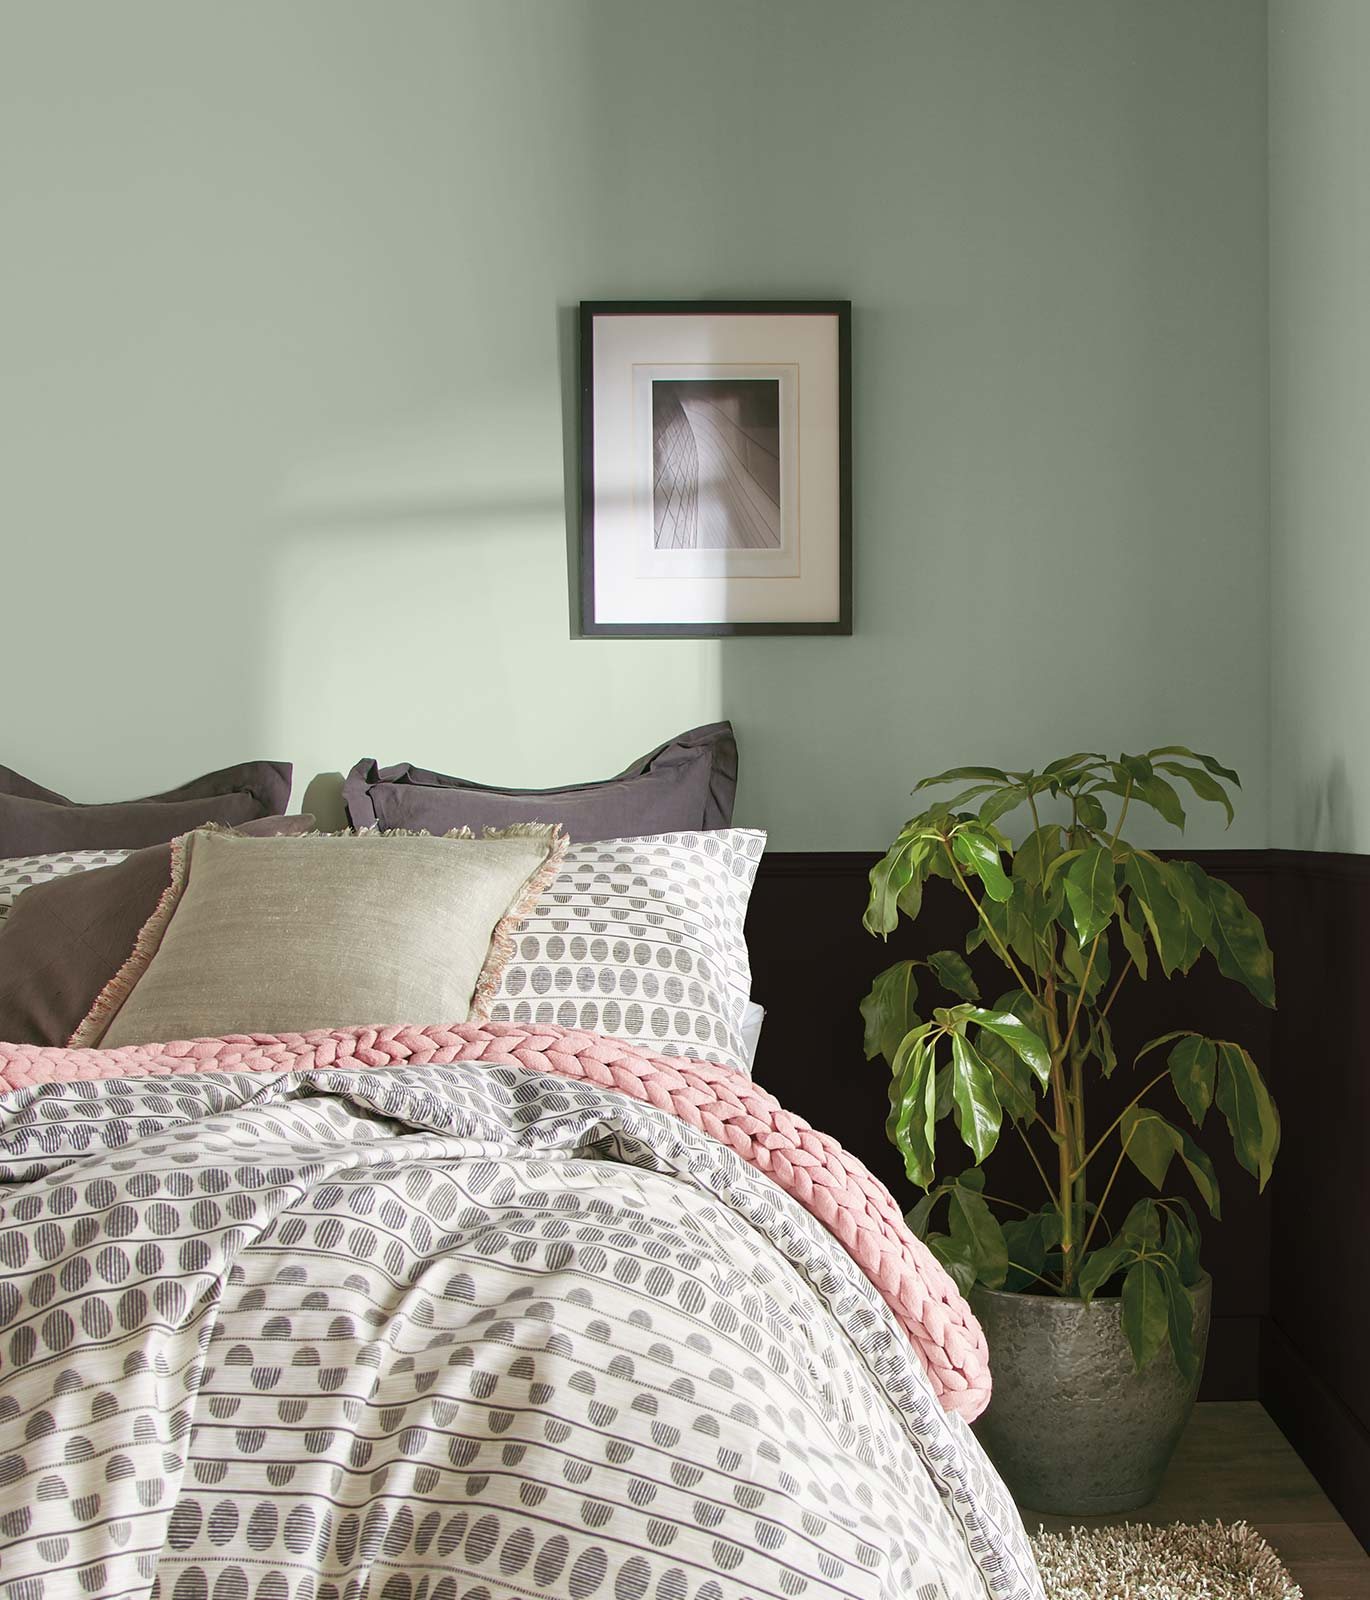 Tight crop of a bedroom with gray and white bedding. Upper half of the walls are painted in a light green. The bottom half is painted black. The feel of the room is calming.